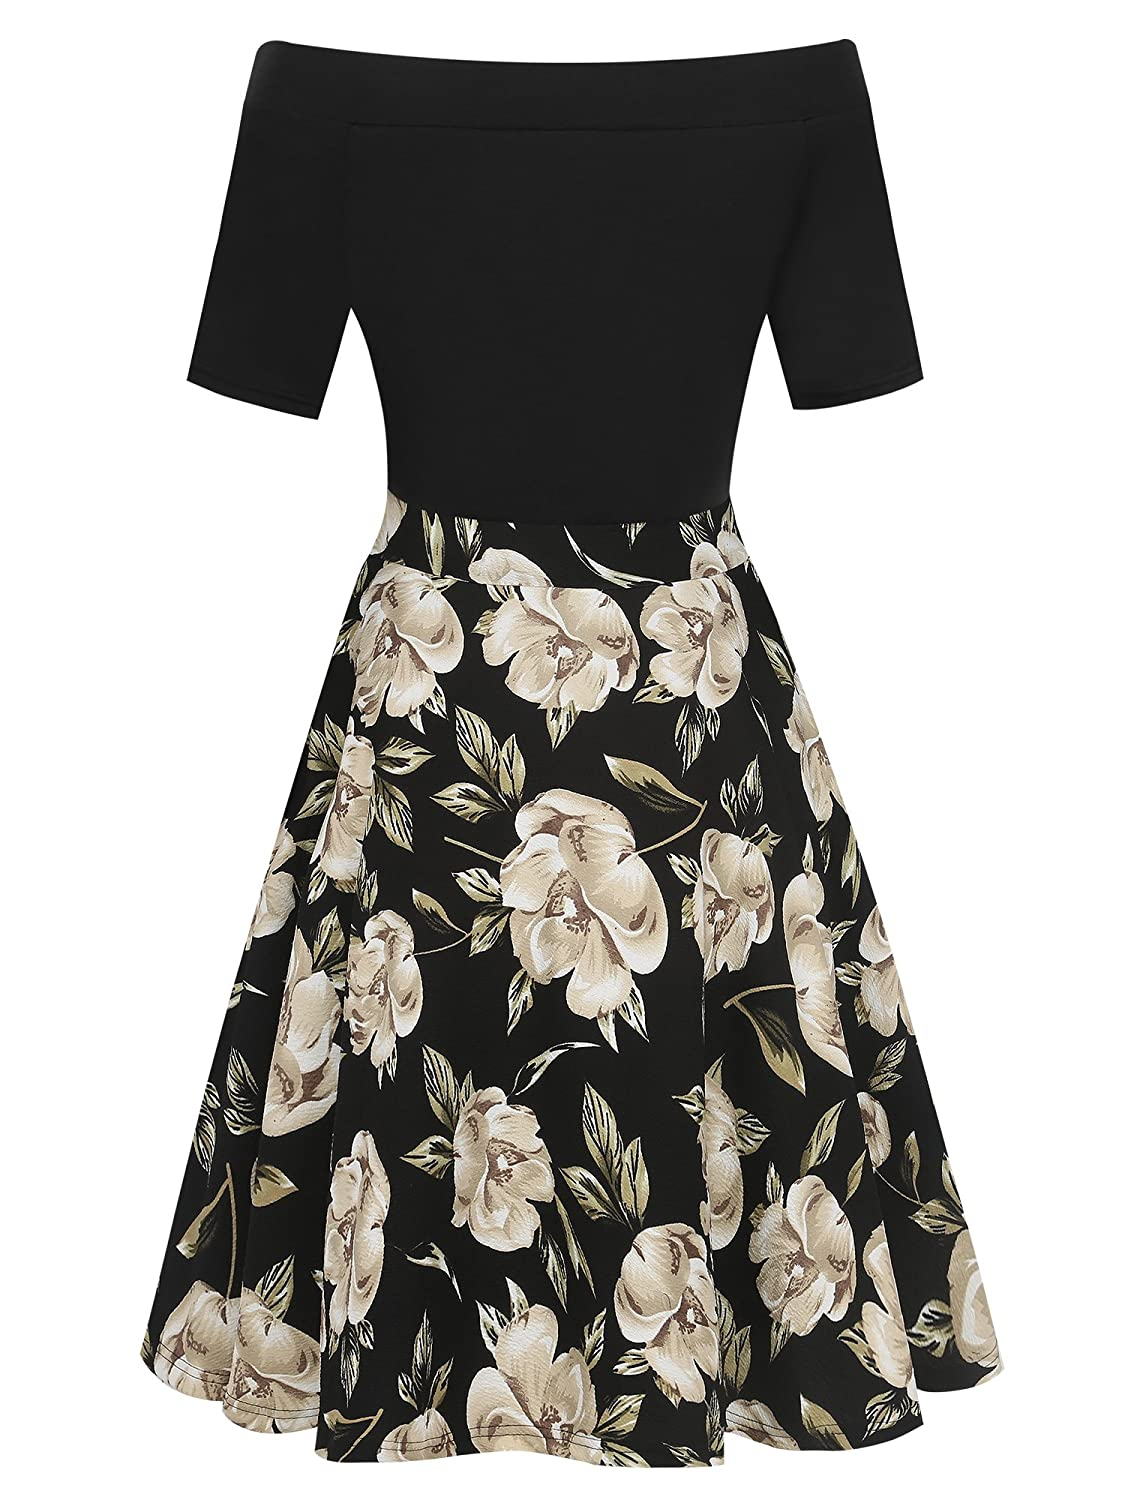 5c7ac65e6e47d oxiuly Women's Casual Pockets Long Sleeve Off Shoulder Floral Flare Party  Dress OX232: Amazon.ca: Clothing & Accessories